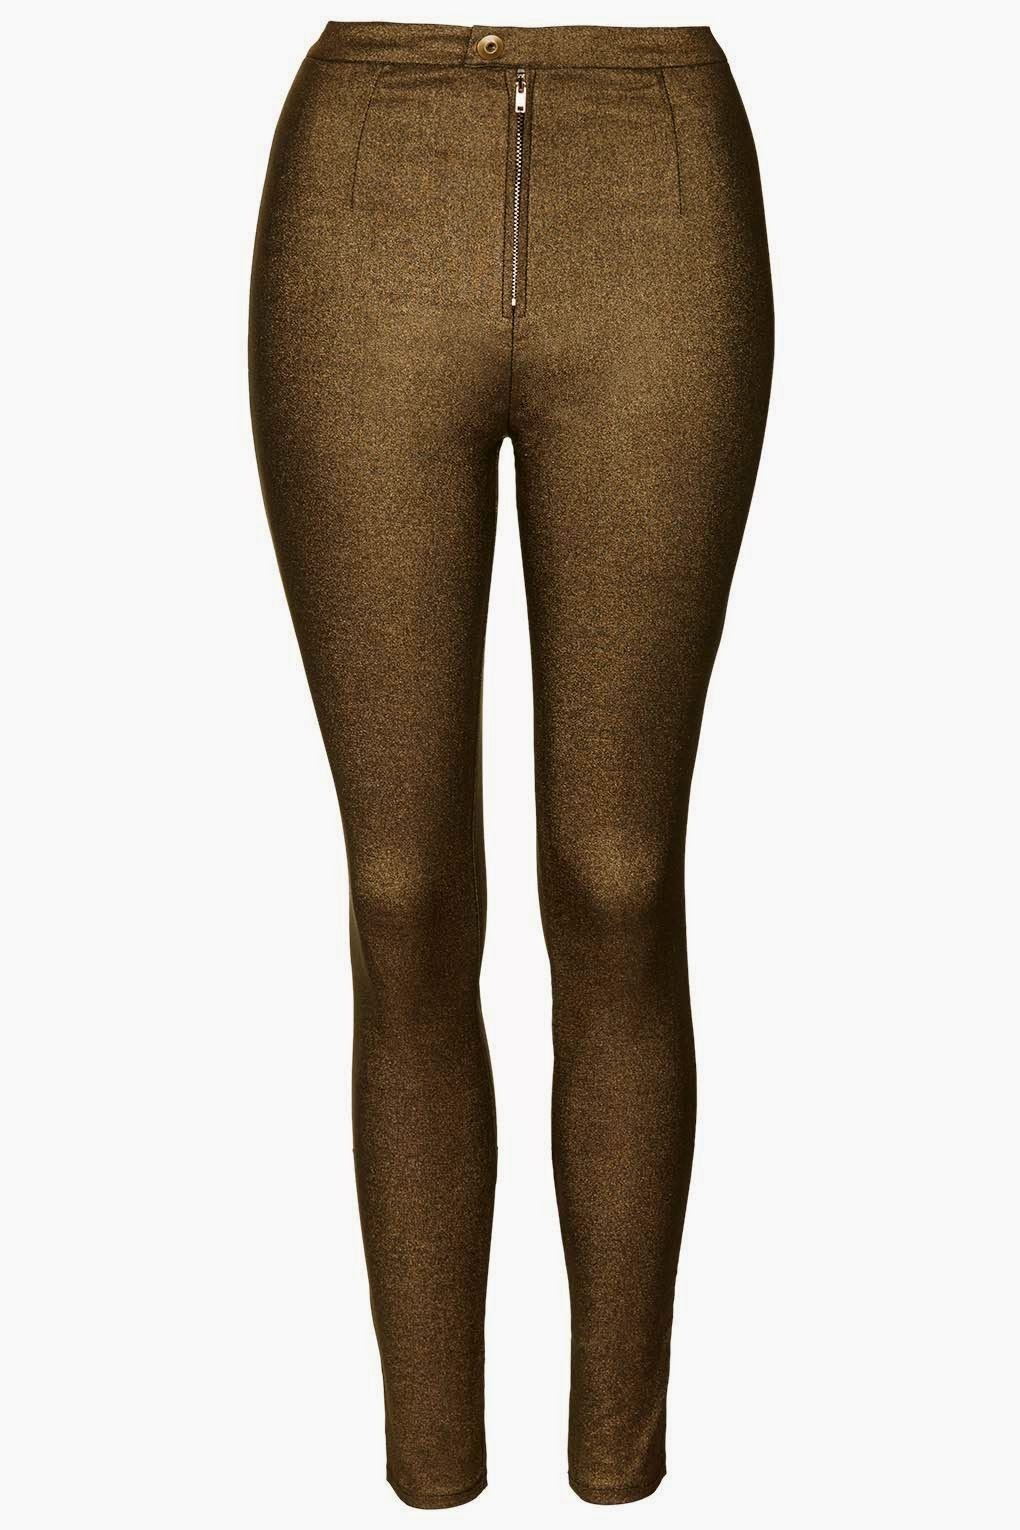 disco trousers, bronze tight jeans,